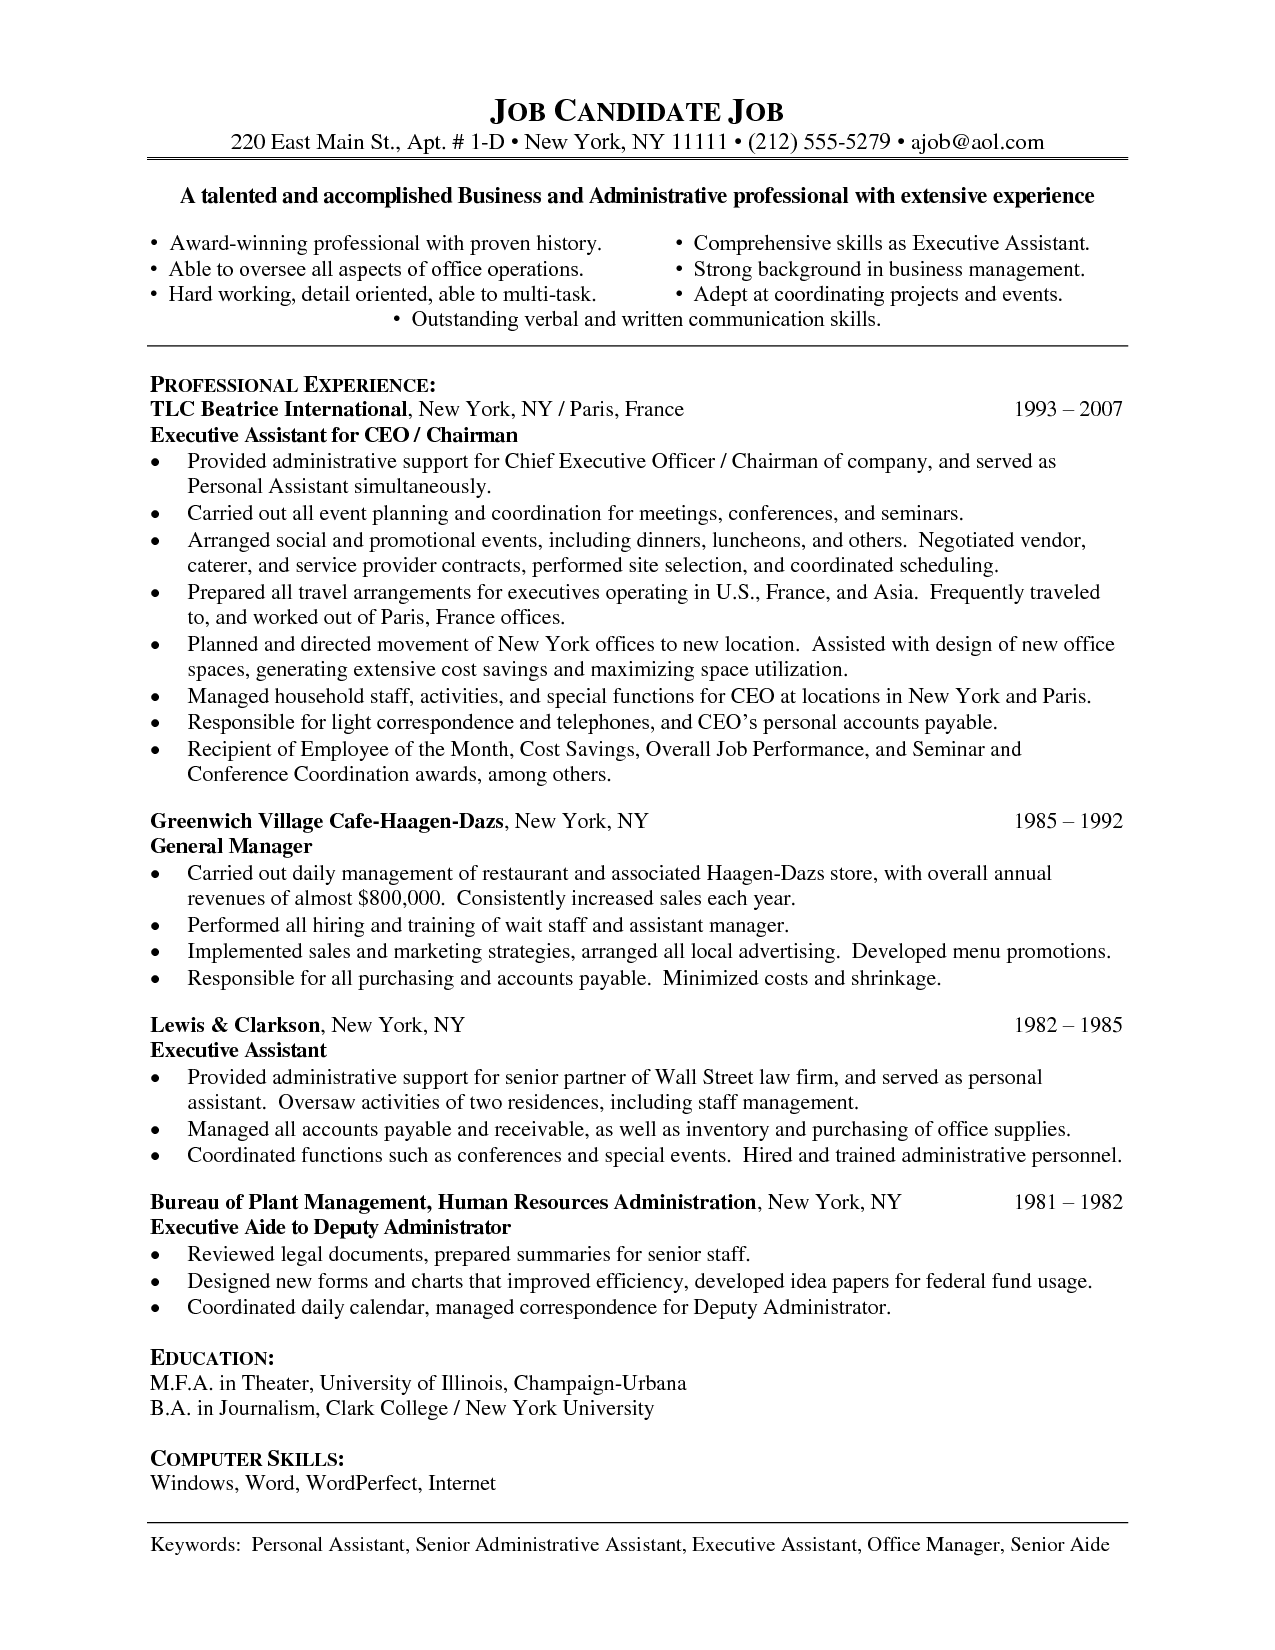 Administrative Assistant Resume Template Administrative Functional Resume  Google Search  Administrative